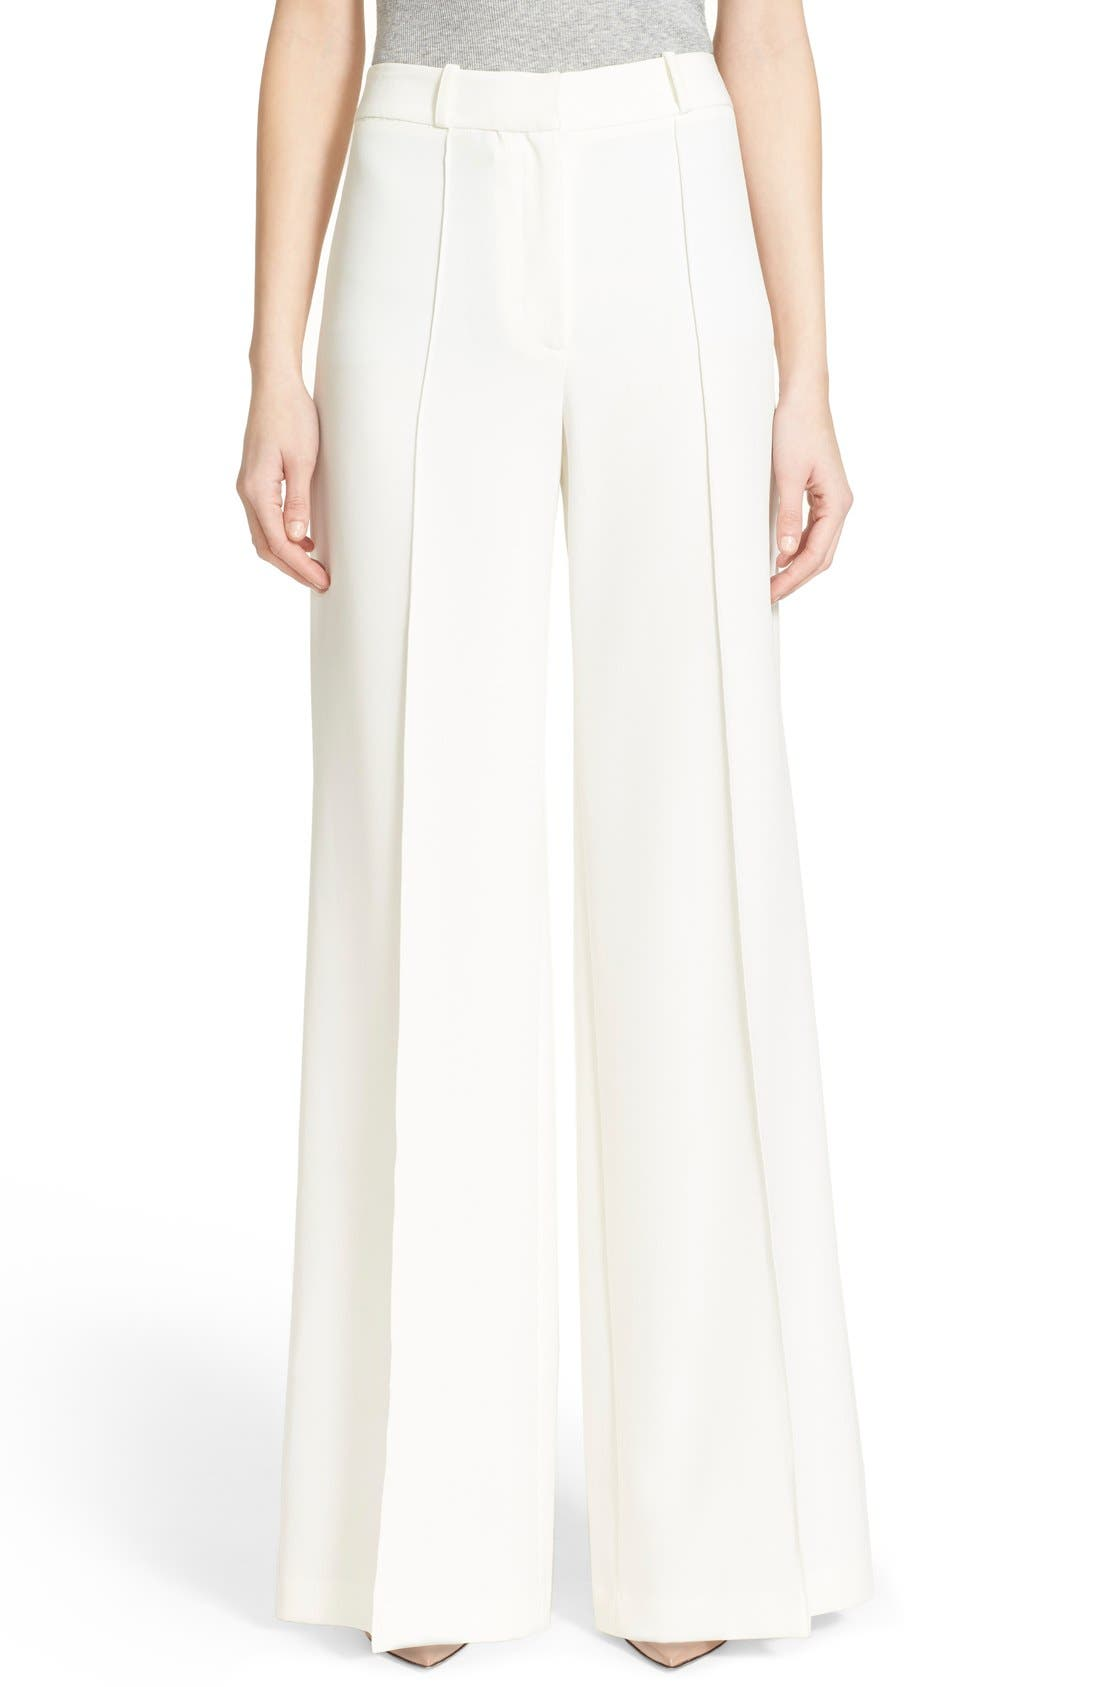 White Pants For Women syMInVoW